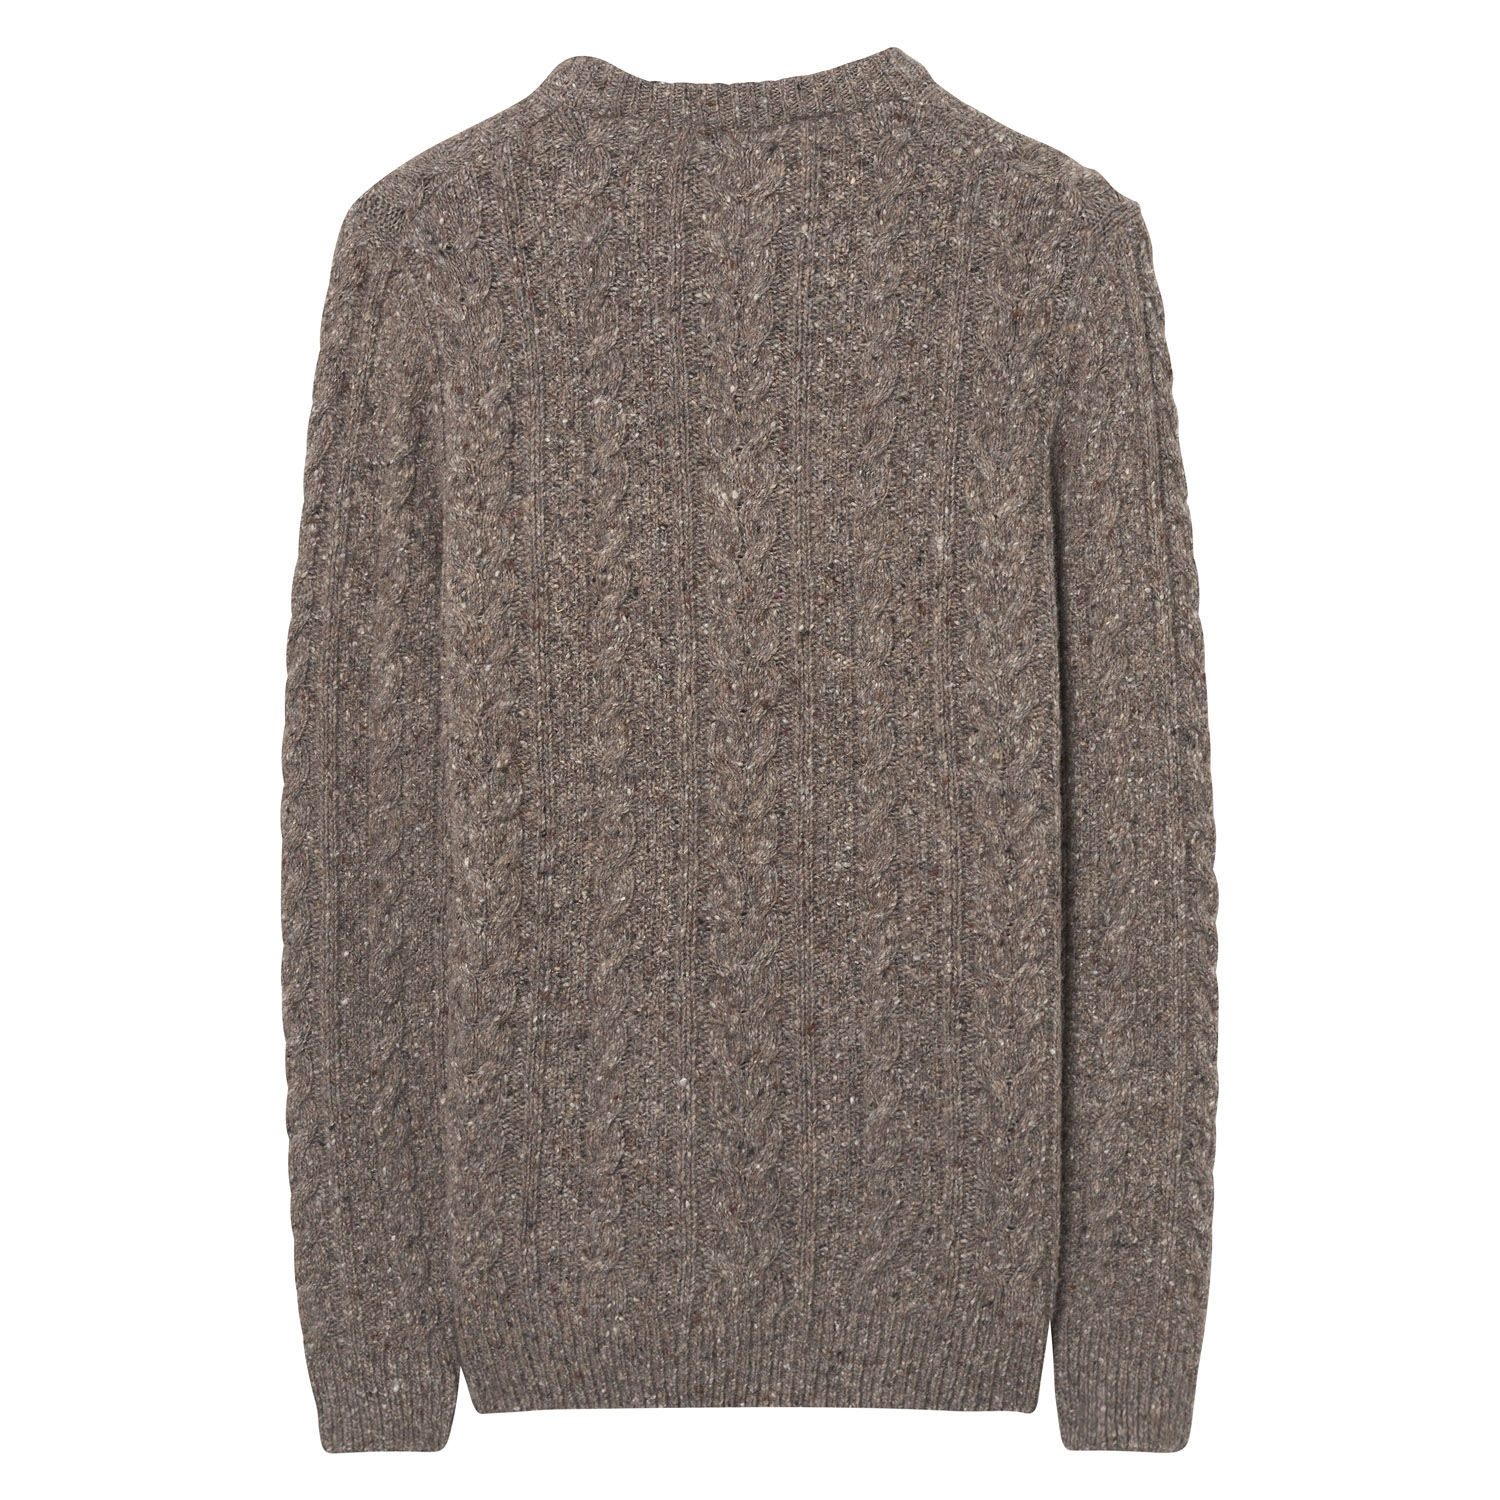 Gant Pullover Strickpullover O2. DONEGAL CABLE CREW 8040032 GREY MELANGE SH18-GS1